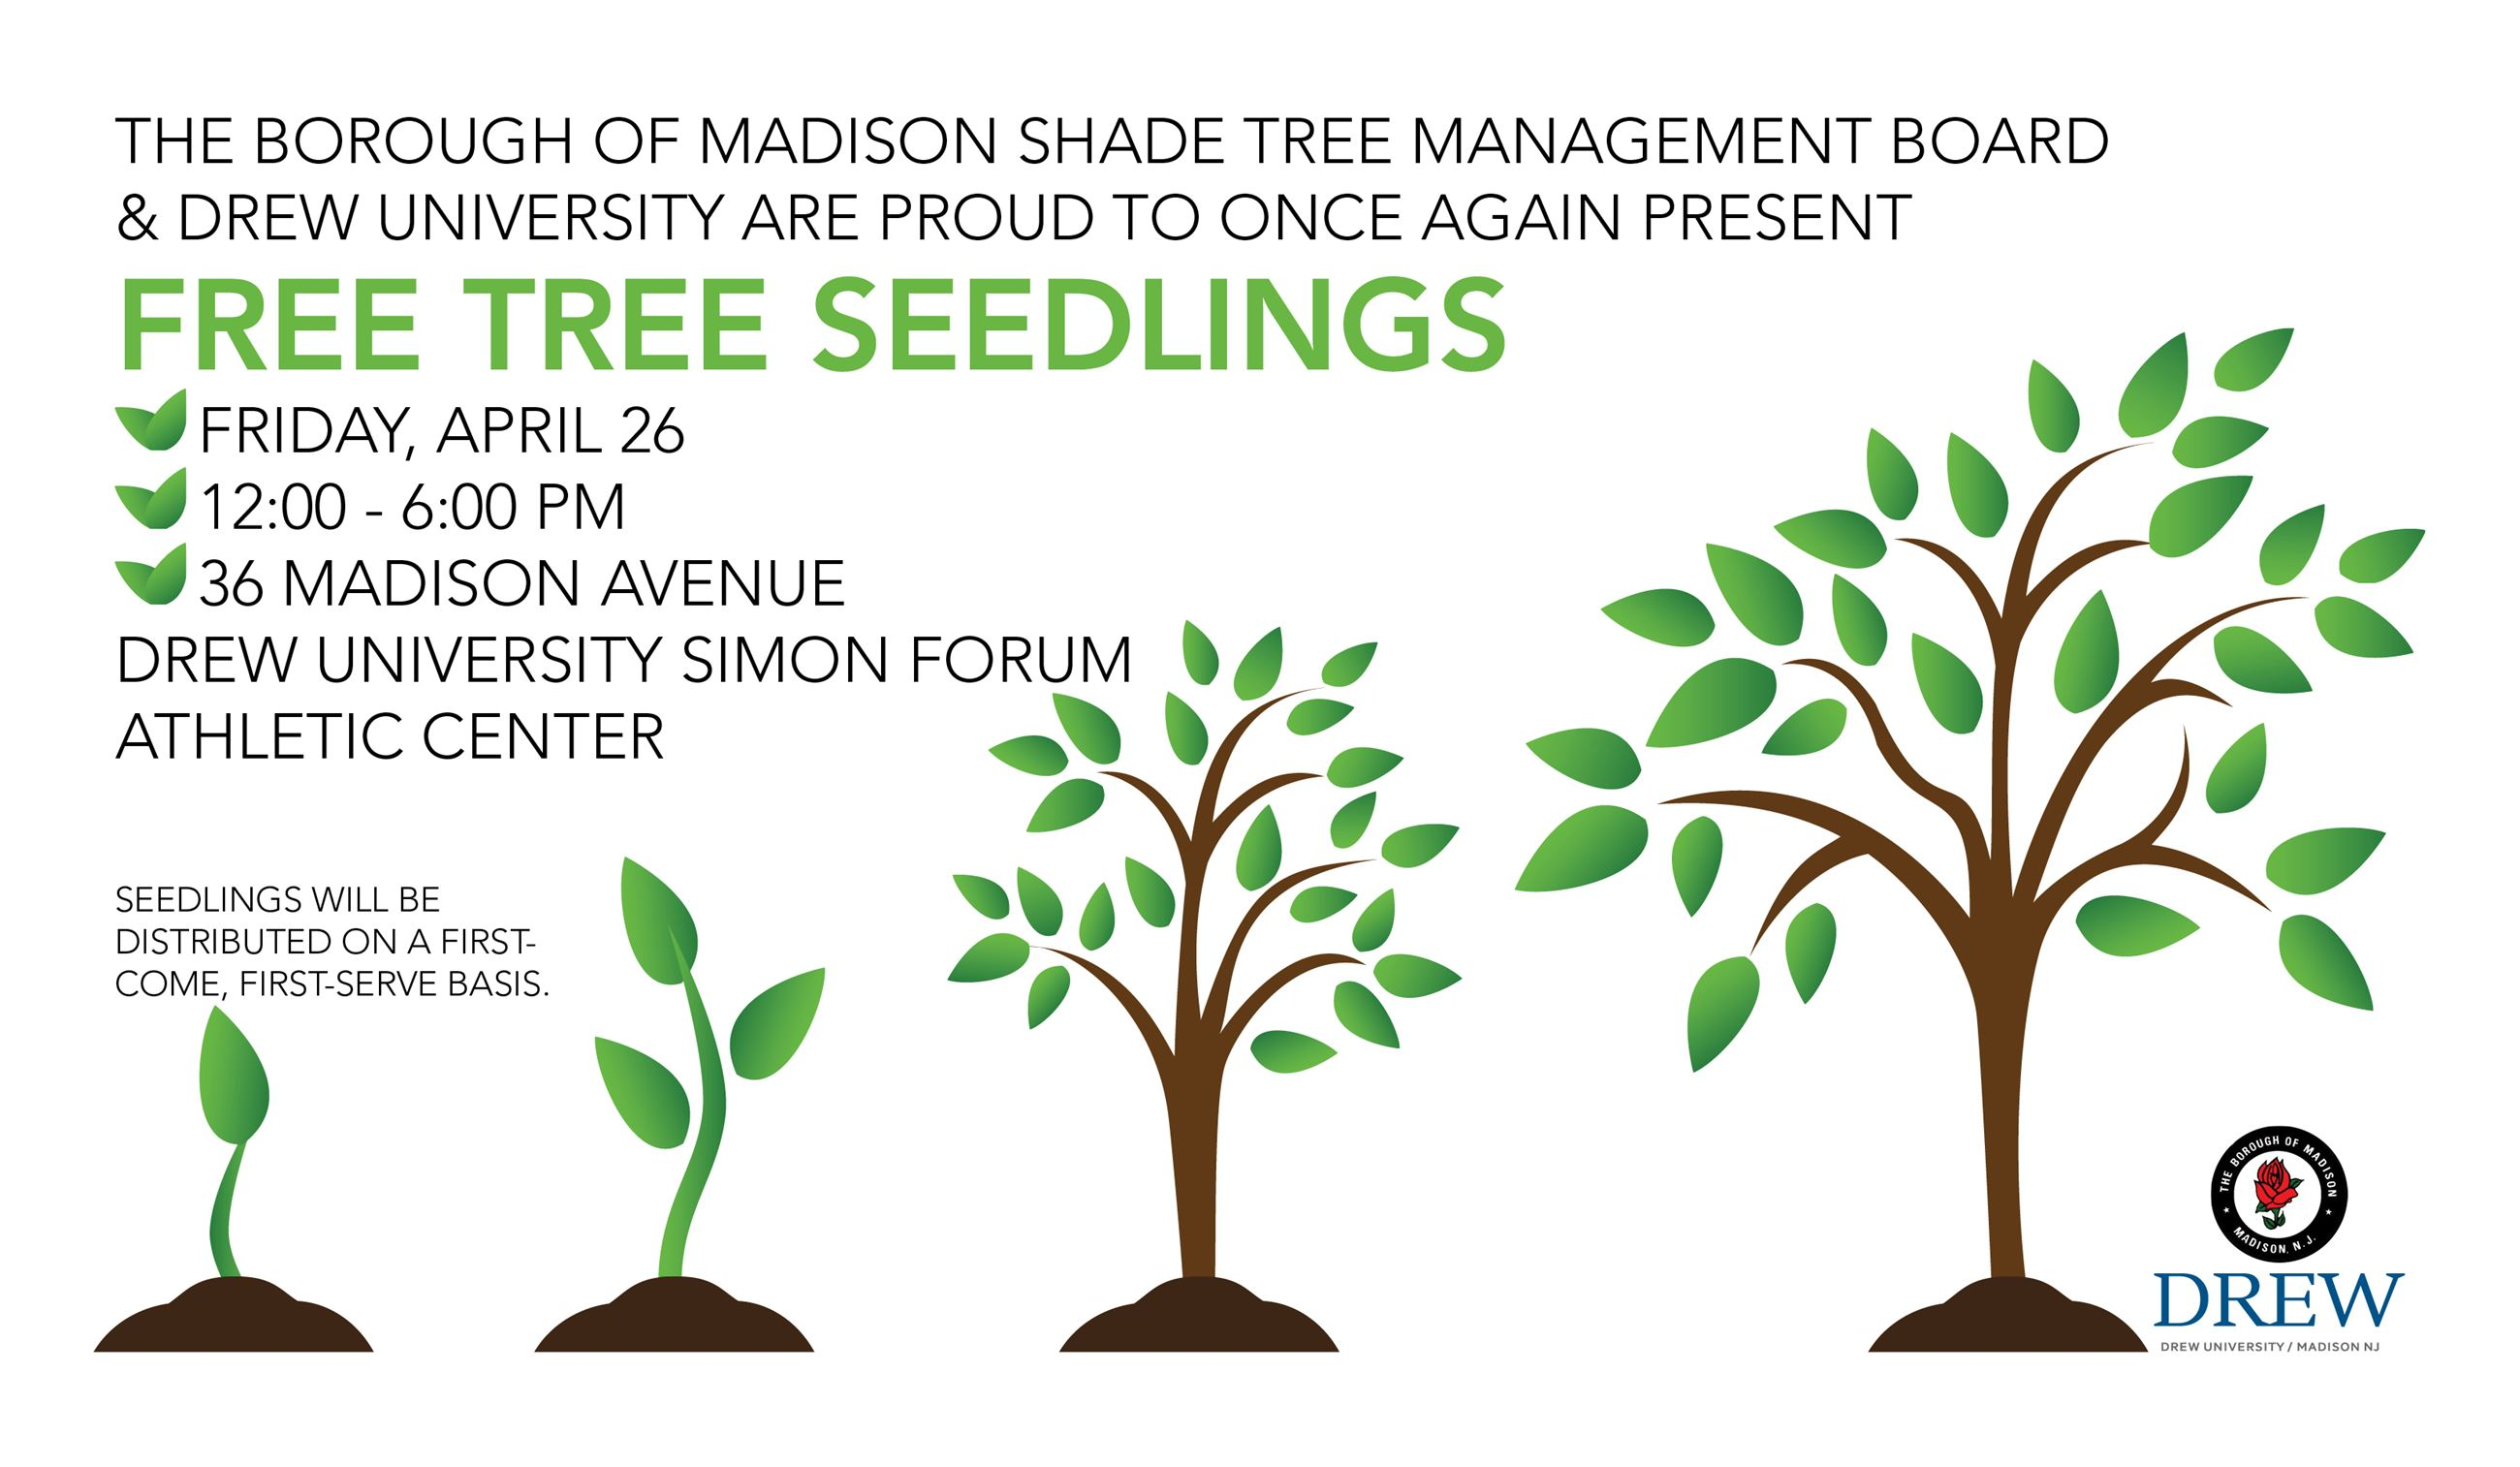 Free seedlings on 4/26